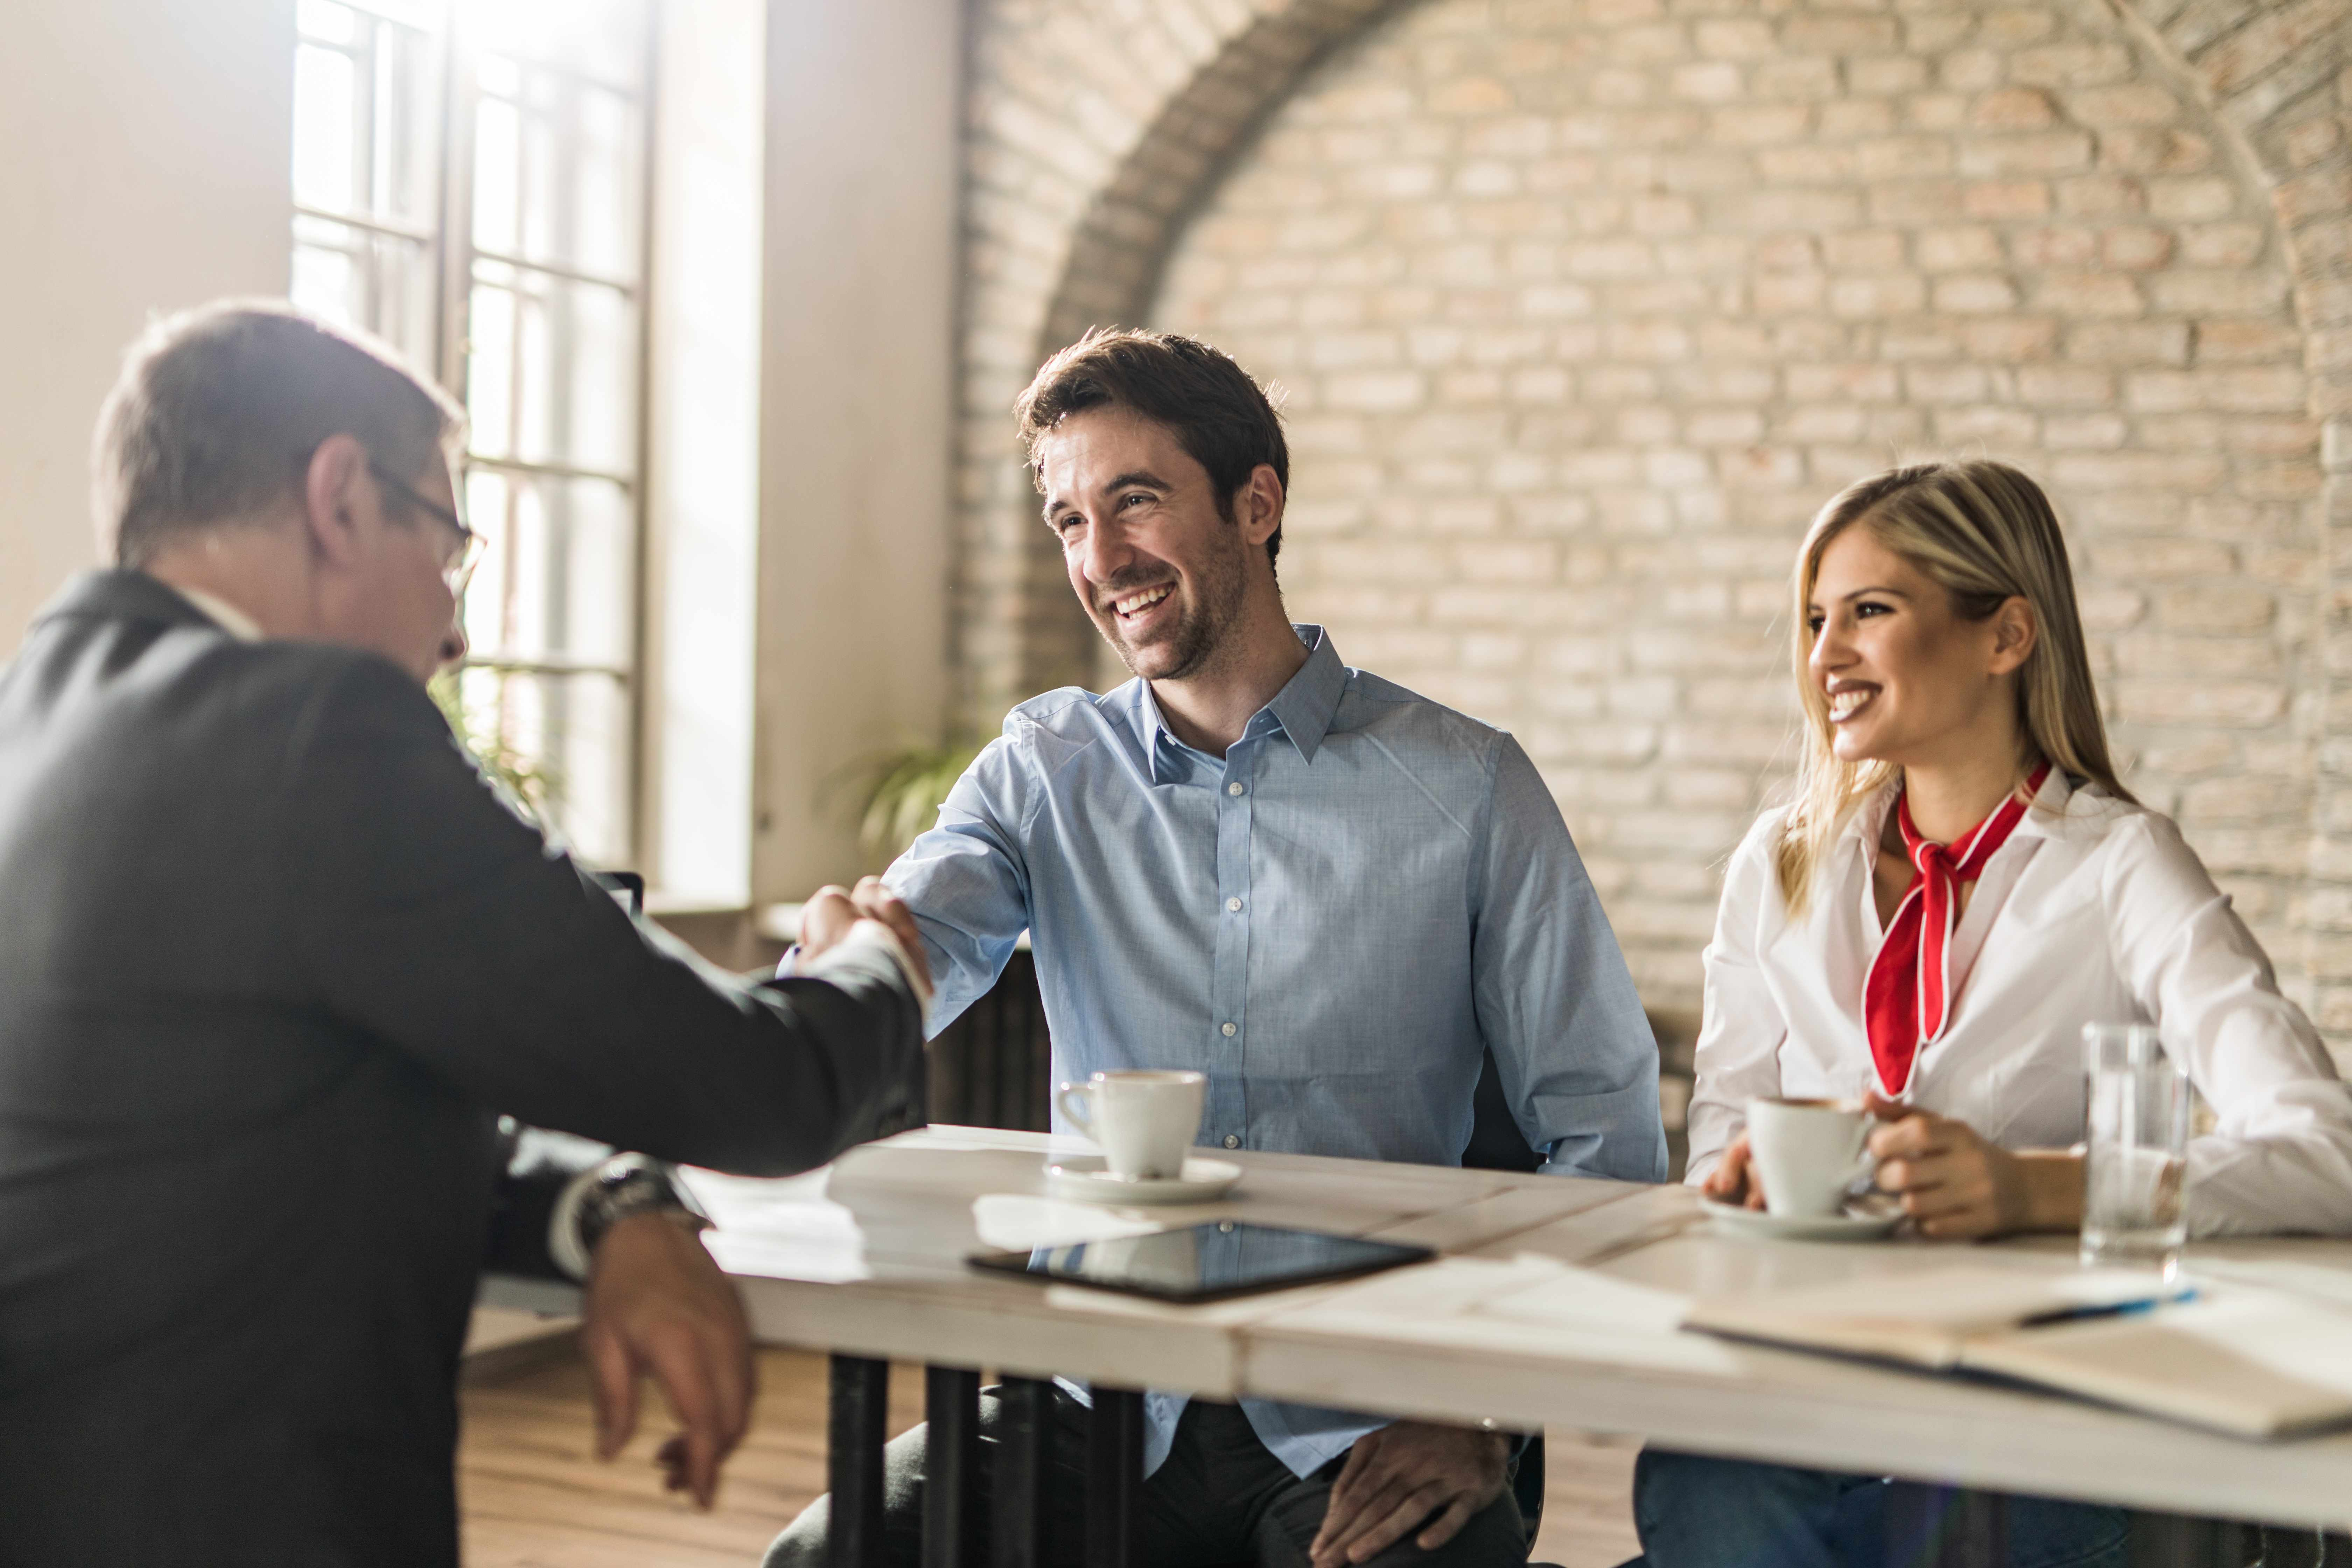 Young happy couple came to an agreement with their insurance agent on a meeting in the office. Focus is on young man shaking hands with agent.